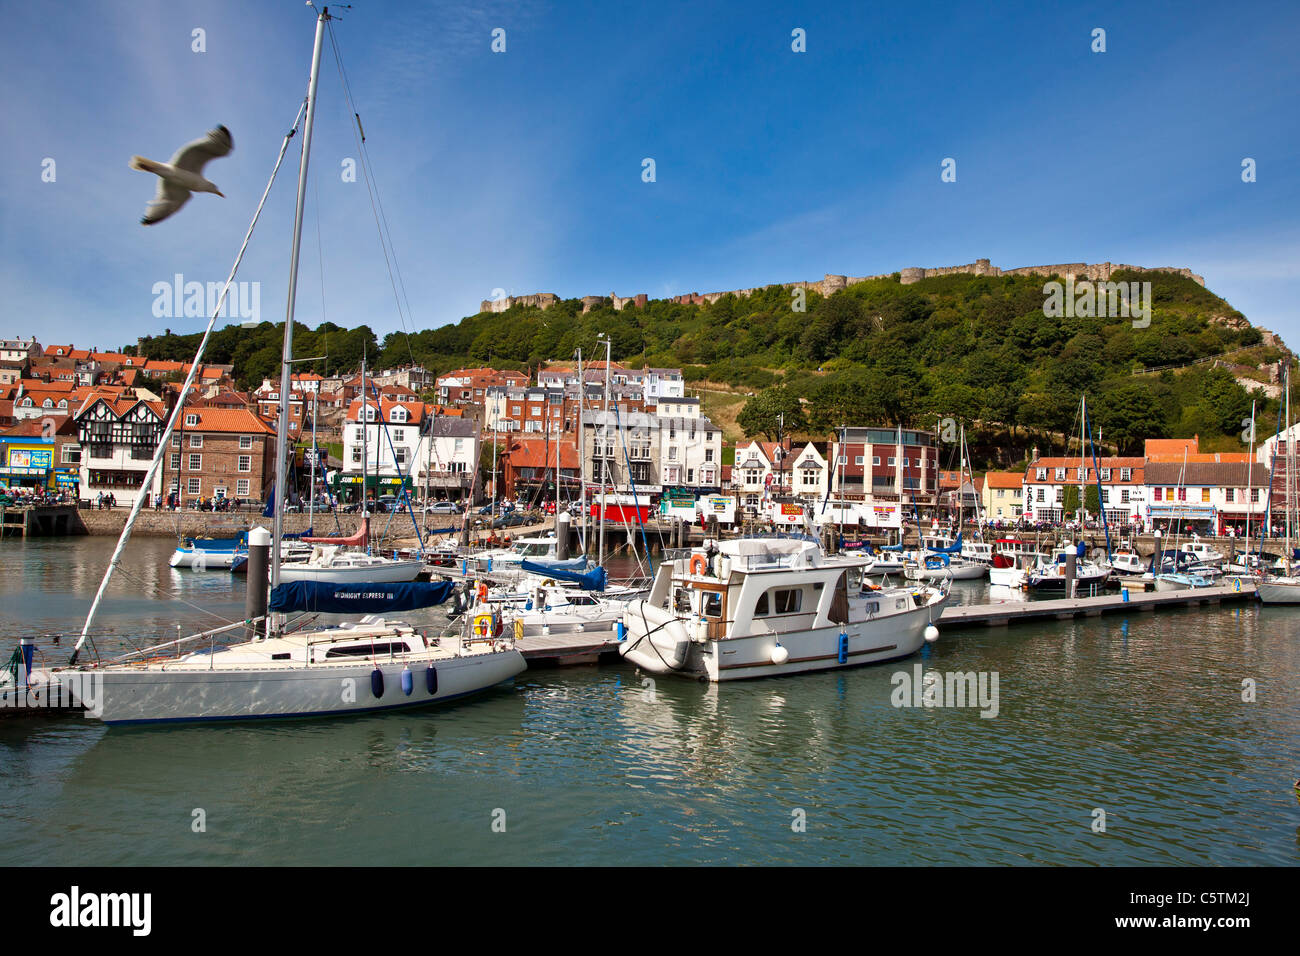 Scarborough Harbour, North Yorkshire - Stock Image